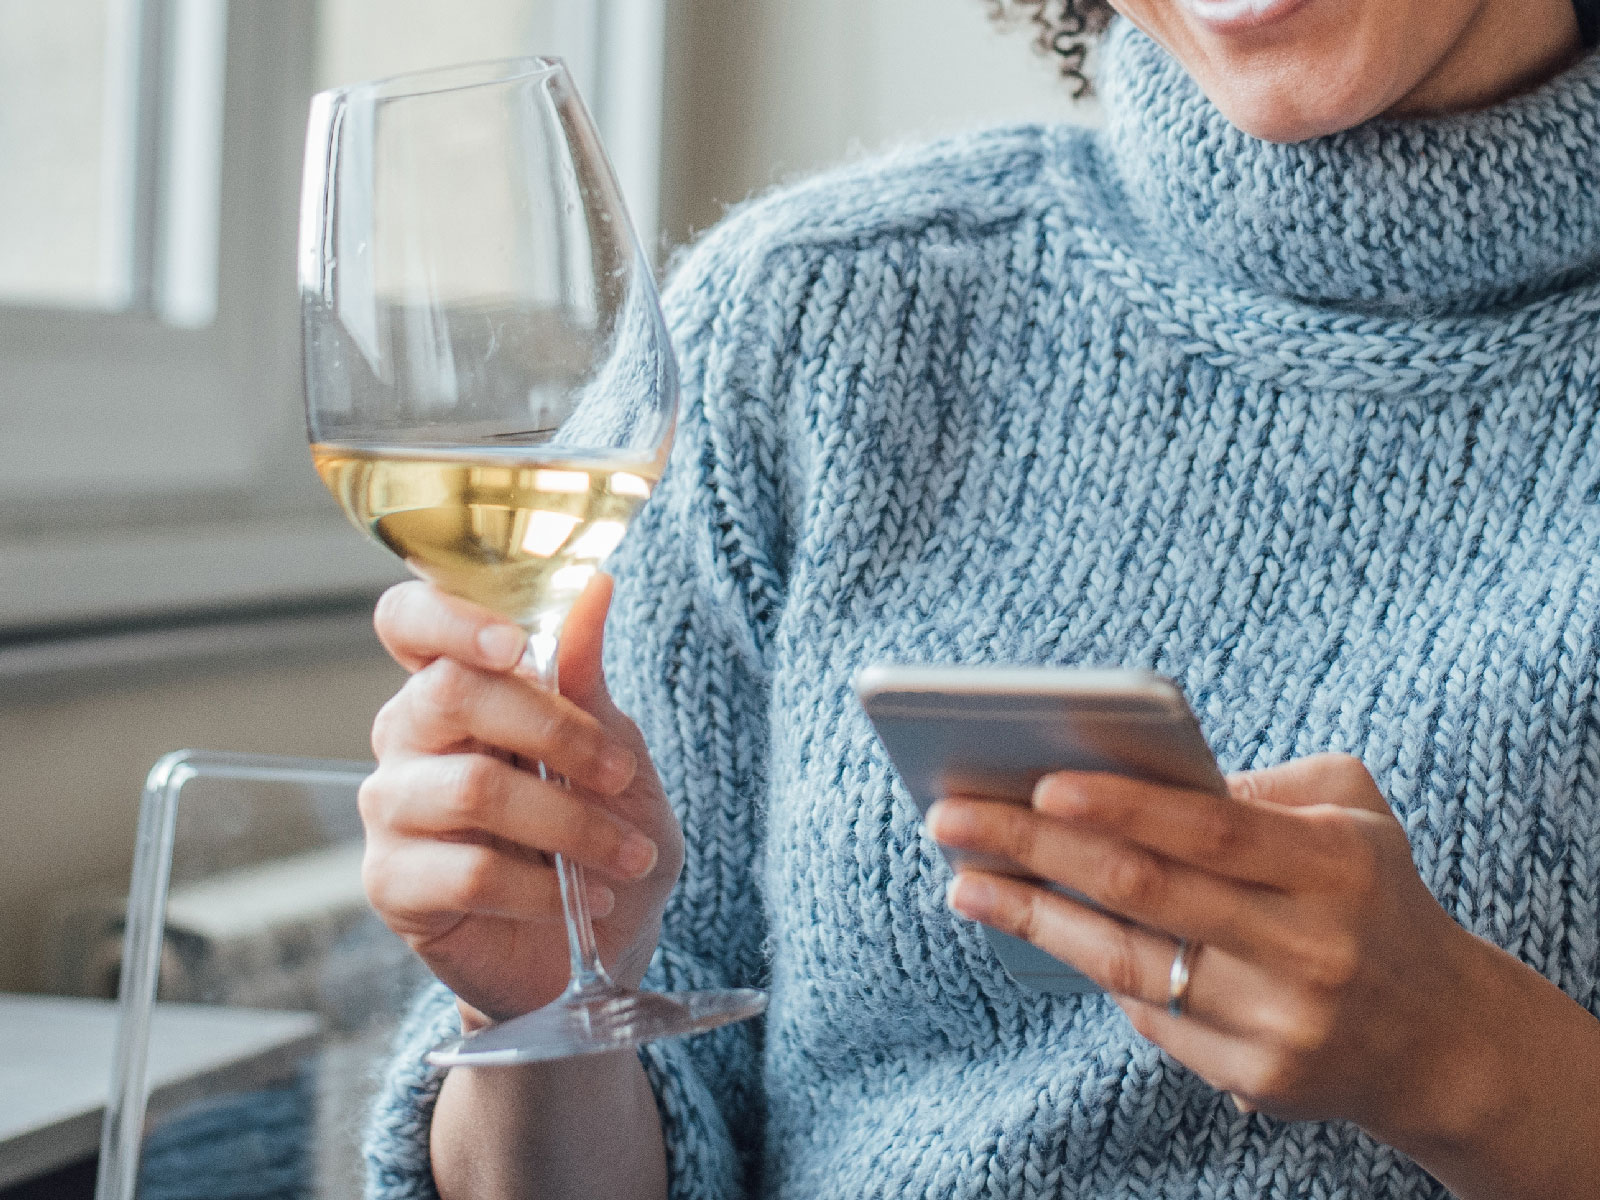 White Wine Emoji Fails to Get Approval from Unicode (Again)